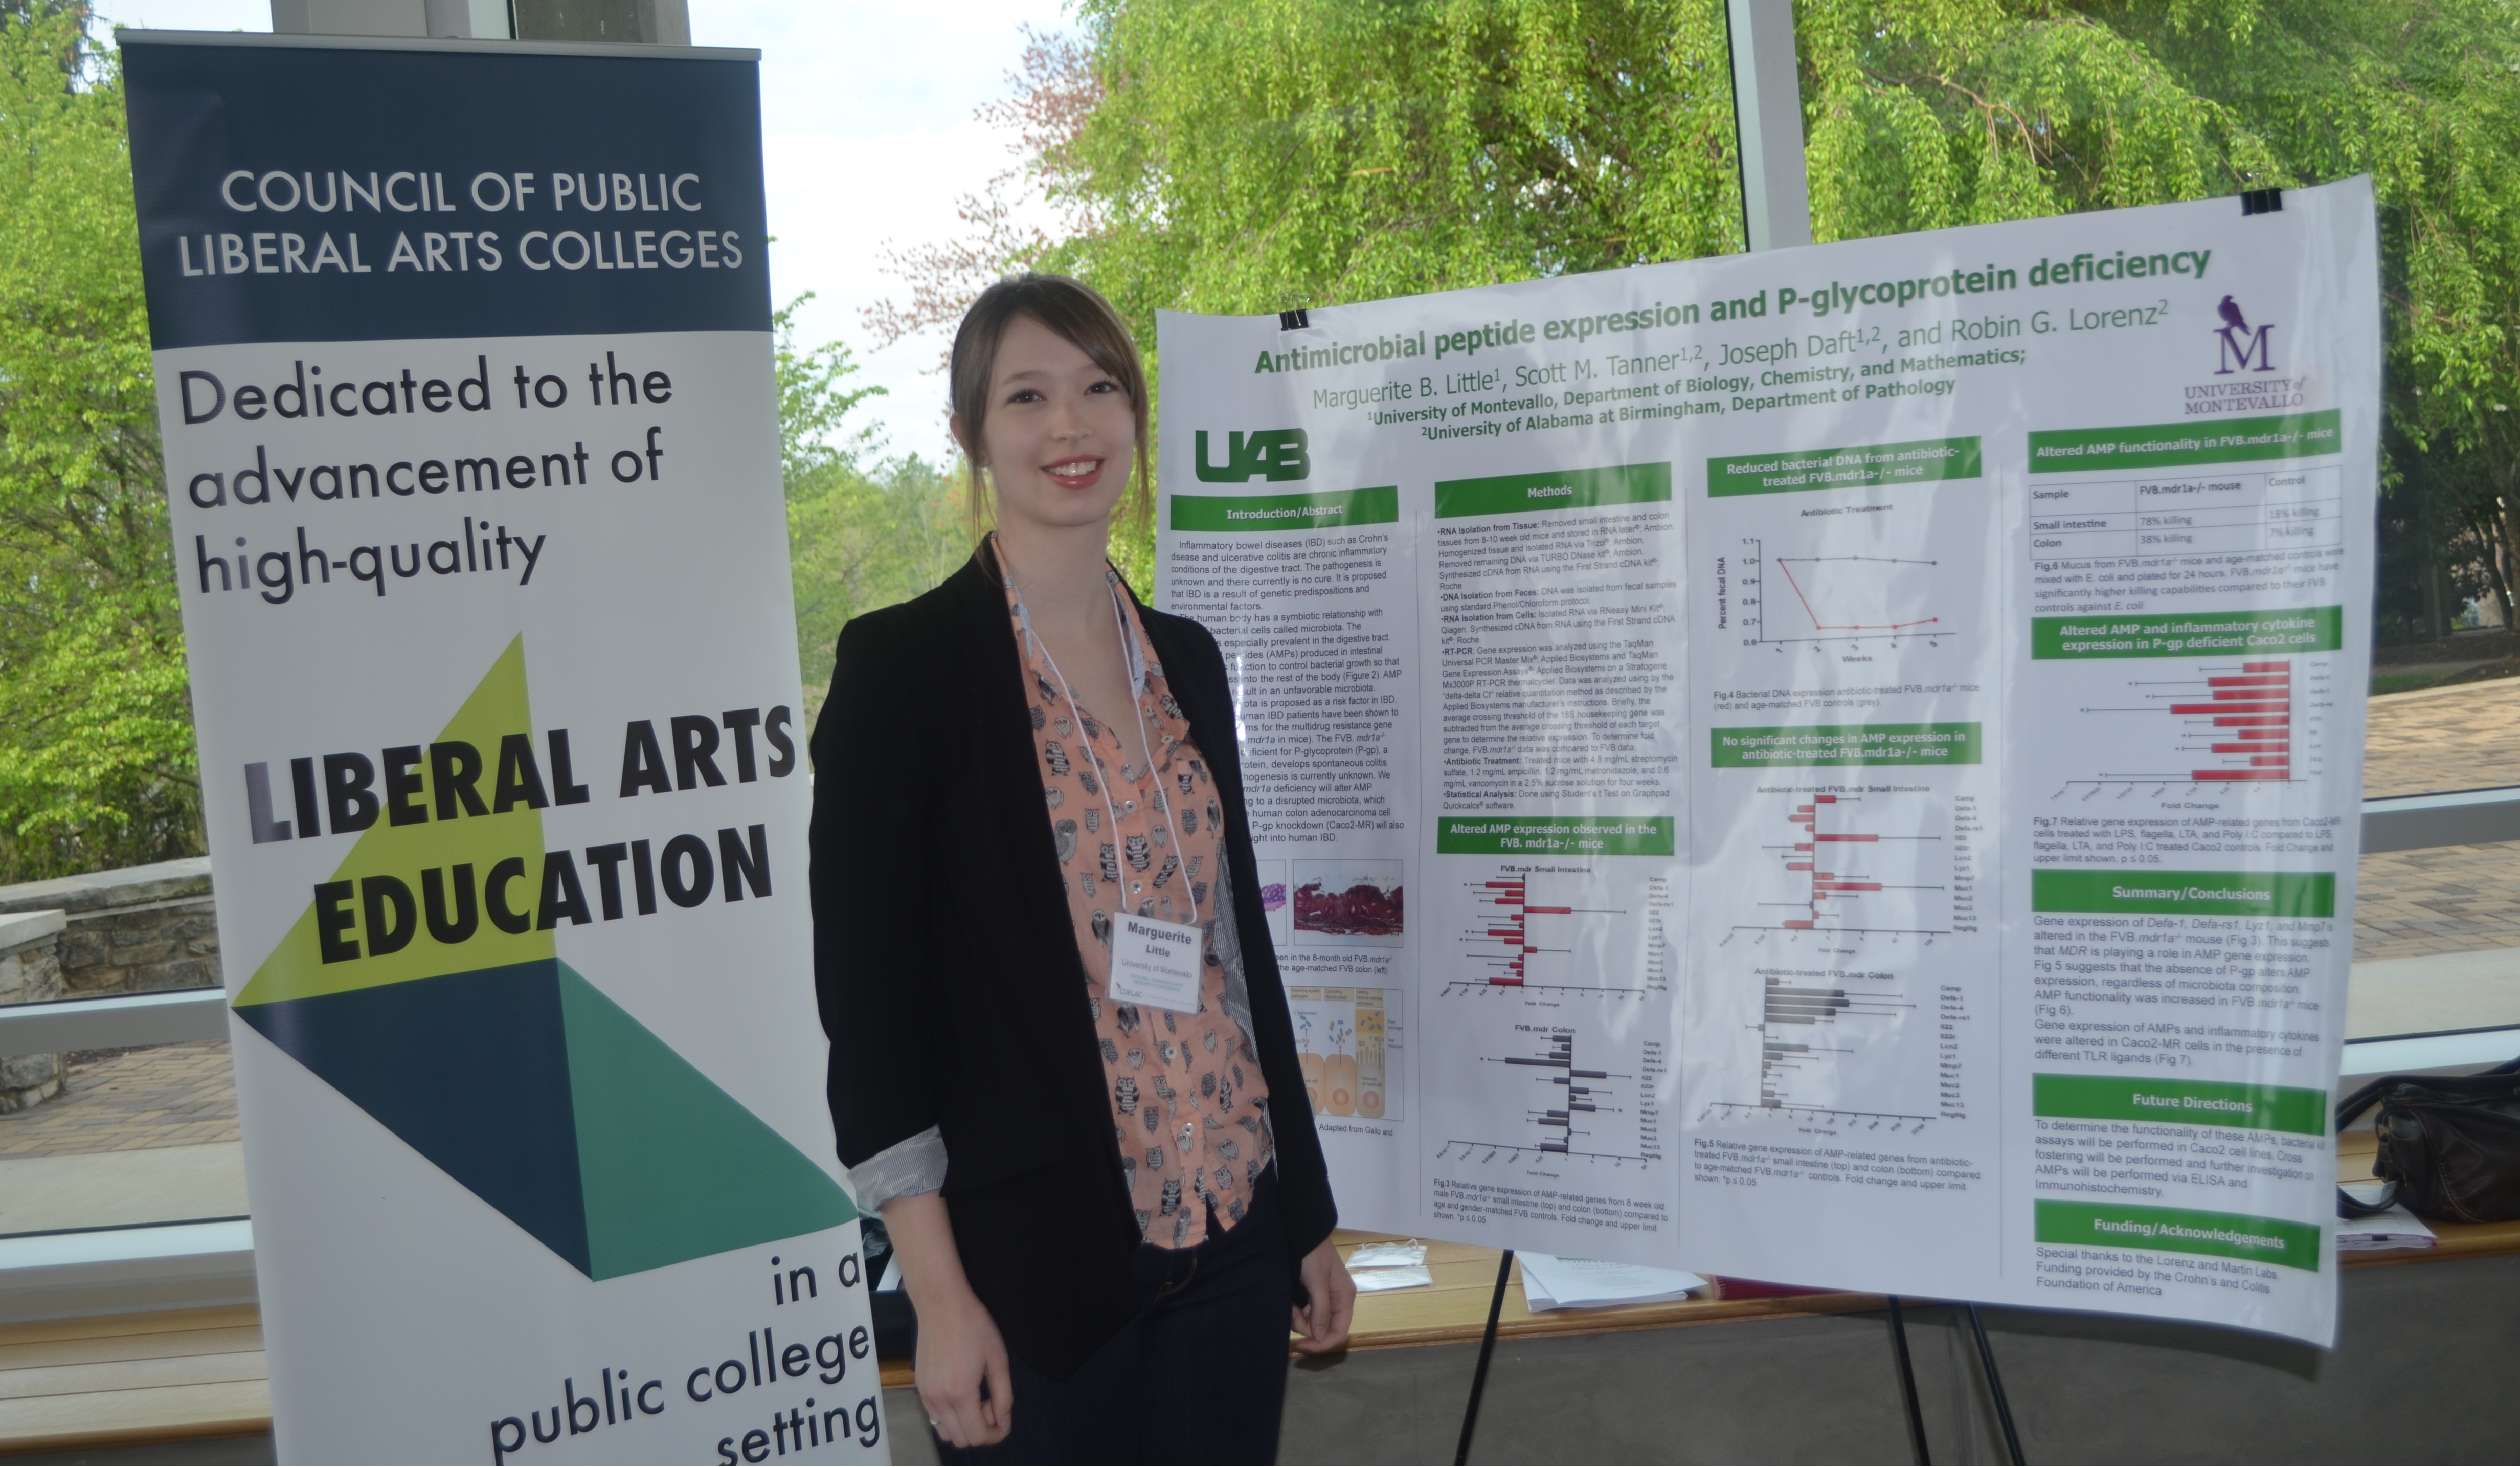 Student presents at COPLAC Undergraduate Research, Scholarly, and Creative Activity Conference